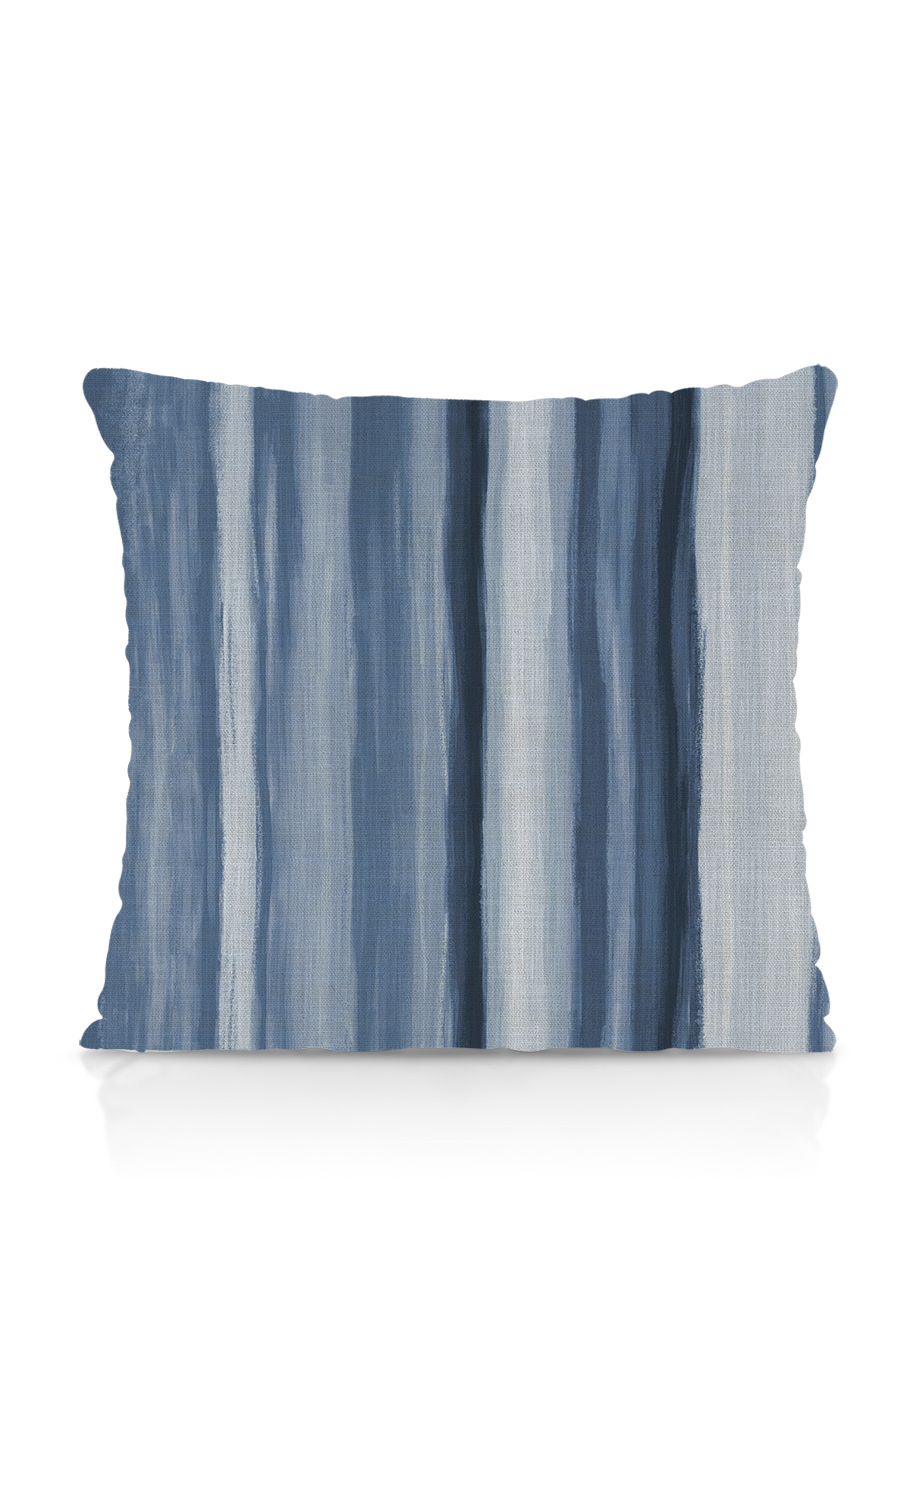 Abstract Cushion For Bedroom